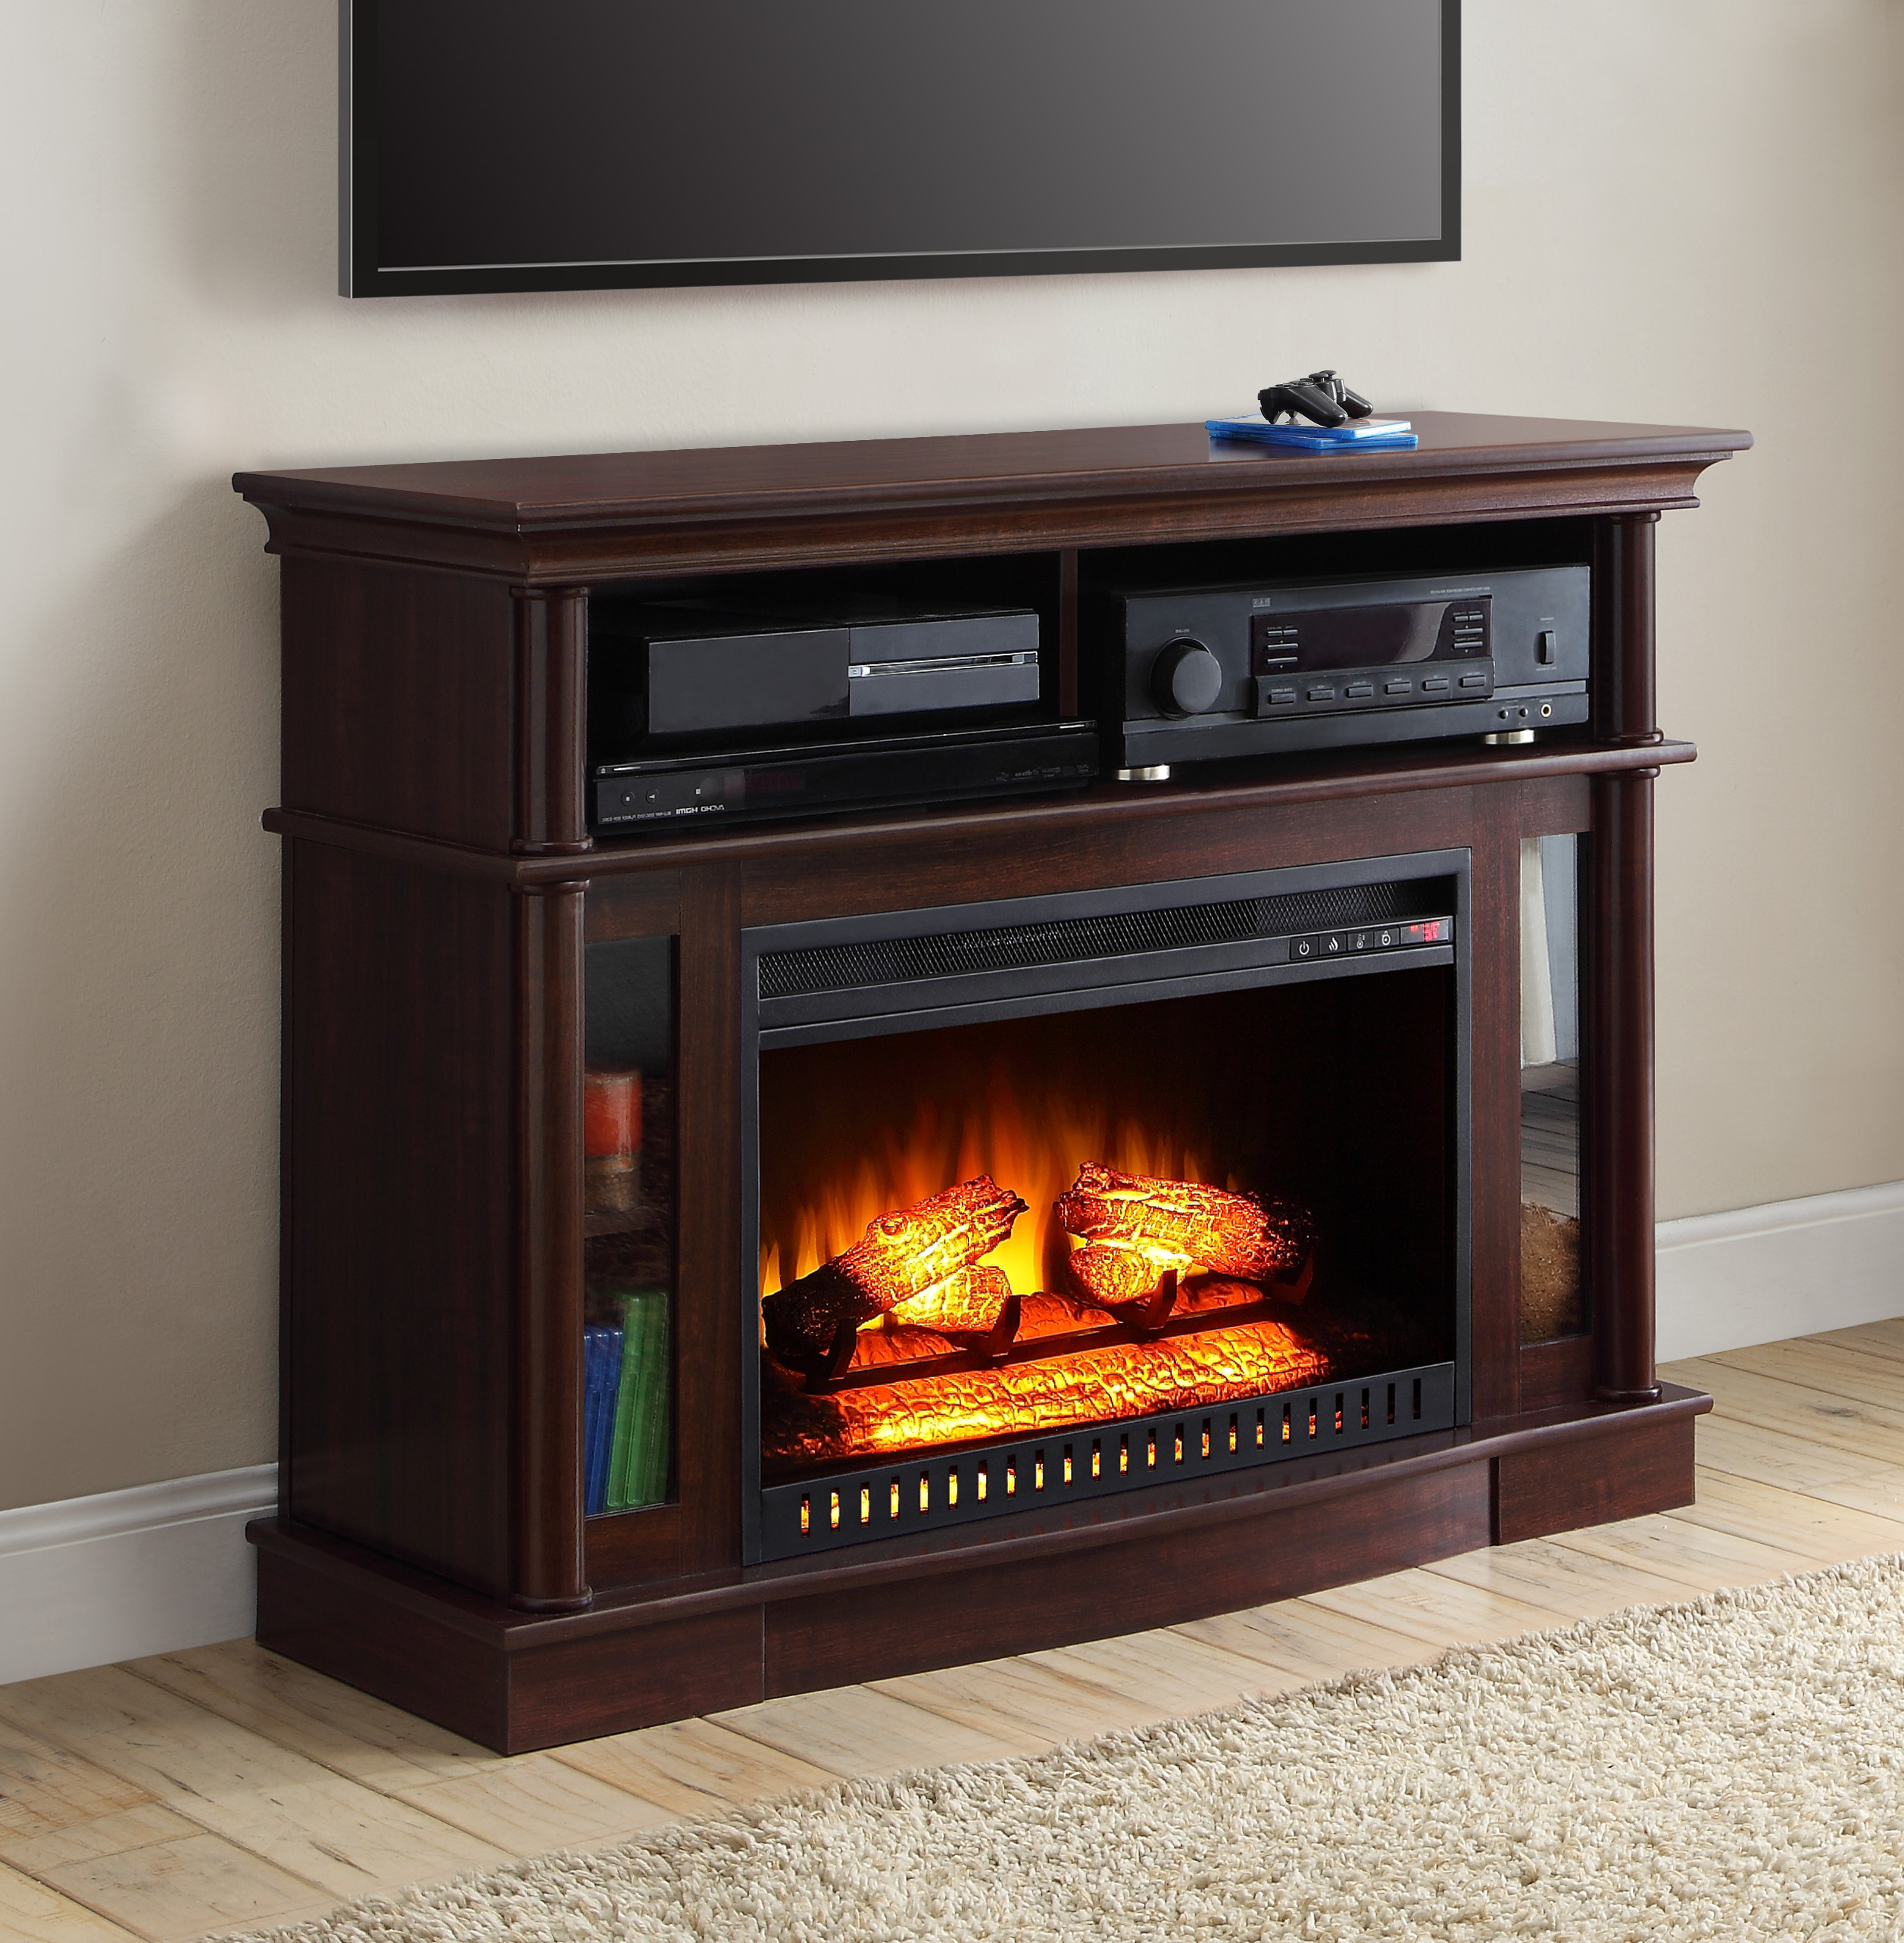 Widely Used Tall Black Tv Cabinets In Tv Stands & Entertainment Centers – Walmart (View 19 of 20)